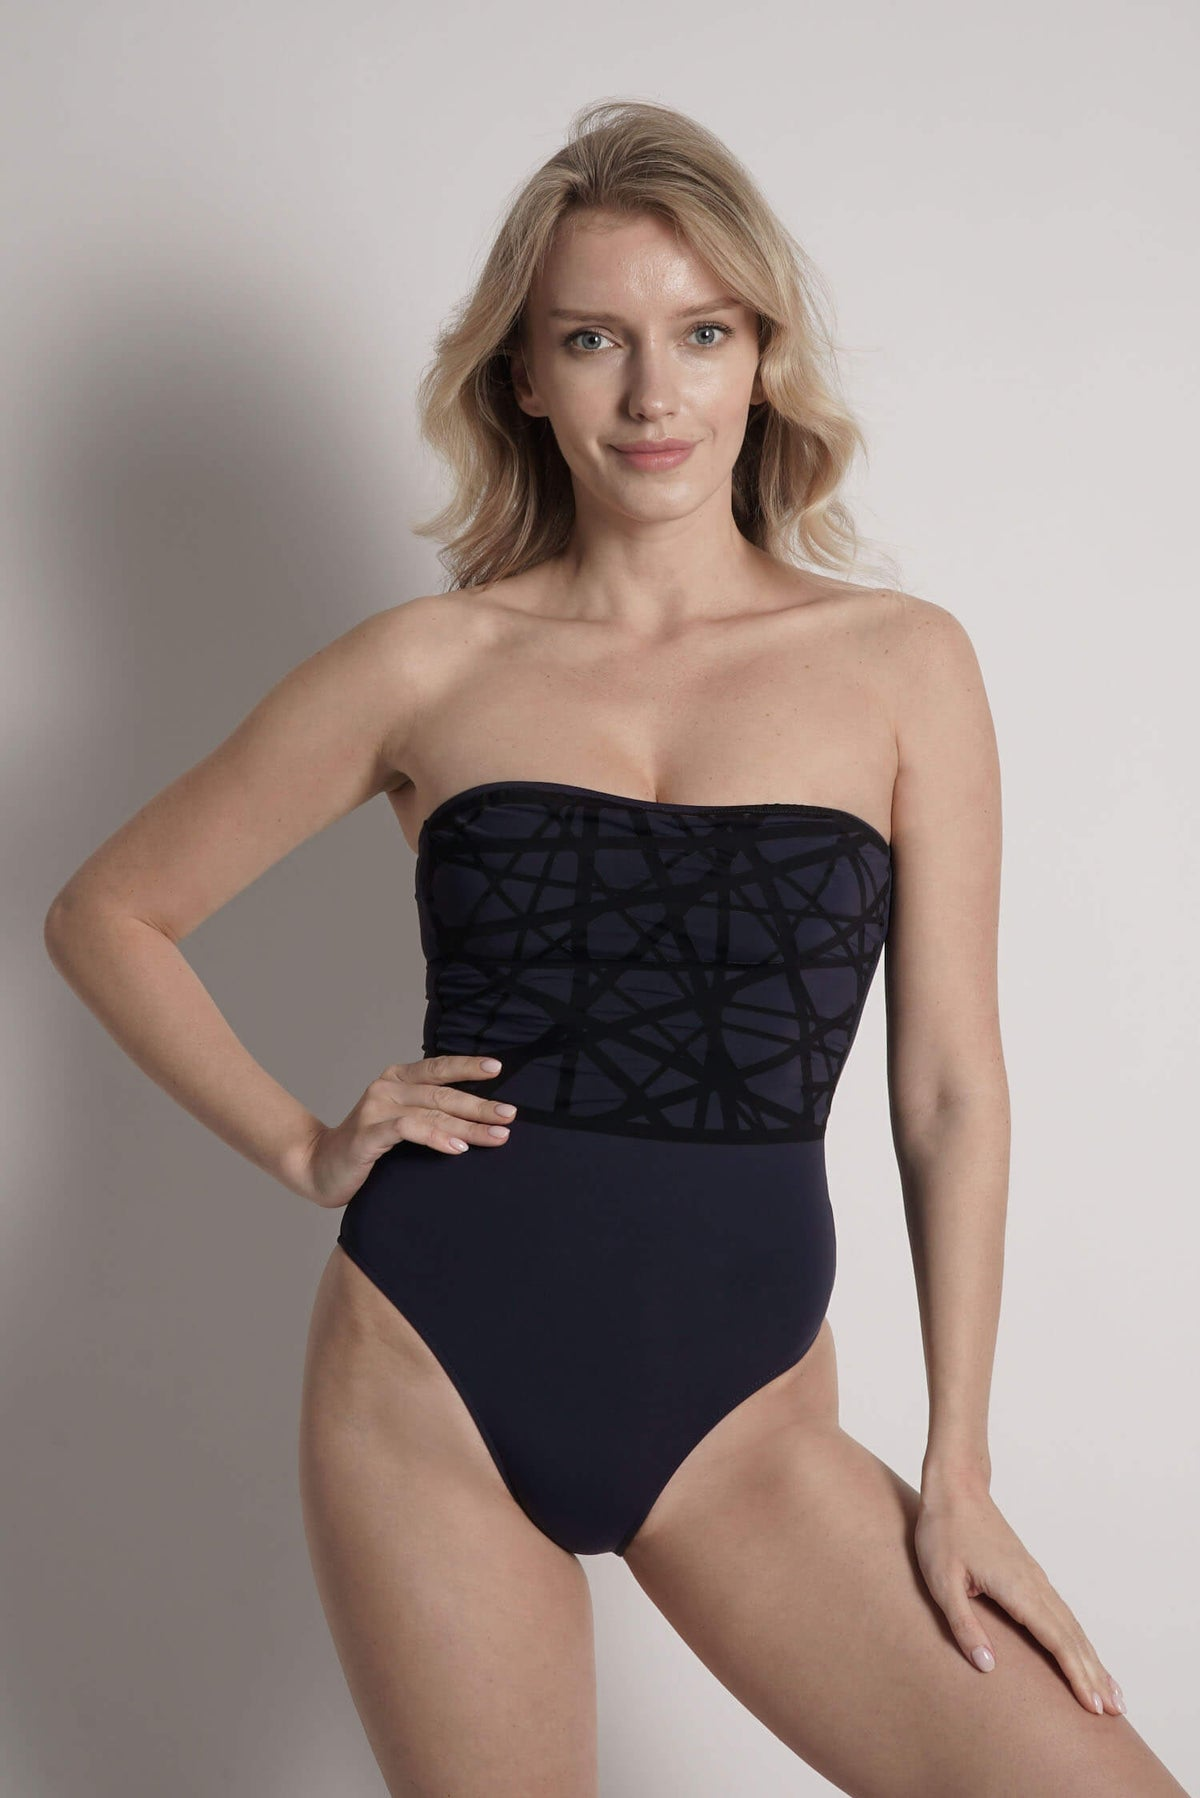 Model wears Angela one piece swimsuit in navy with black laser details.